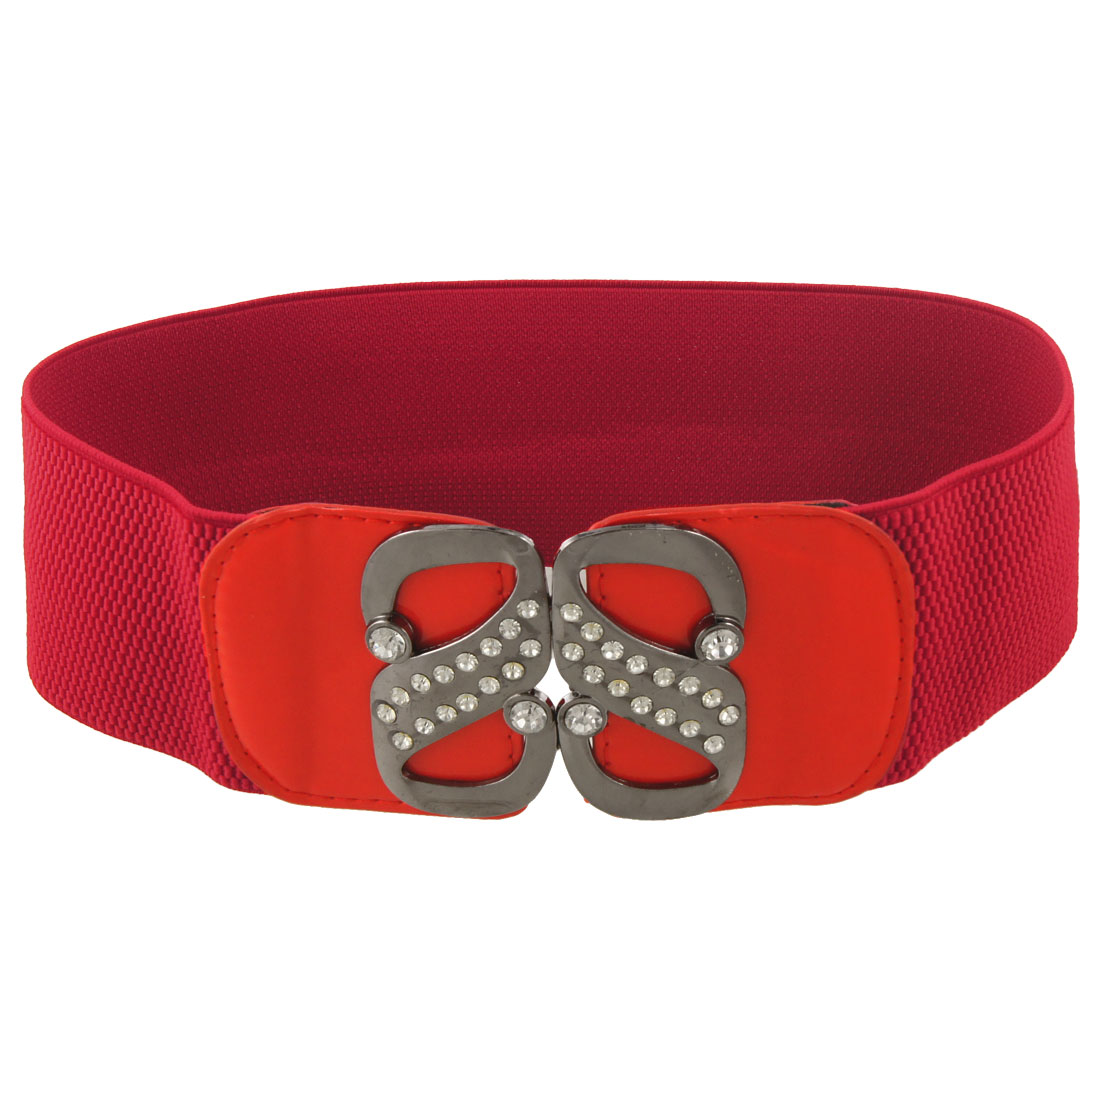 Lady Double S Interlock Buckle Red Elastic High Waist Cinch Belt